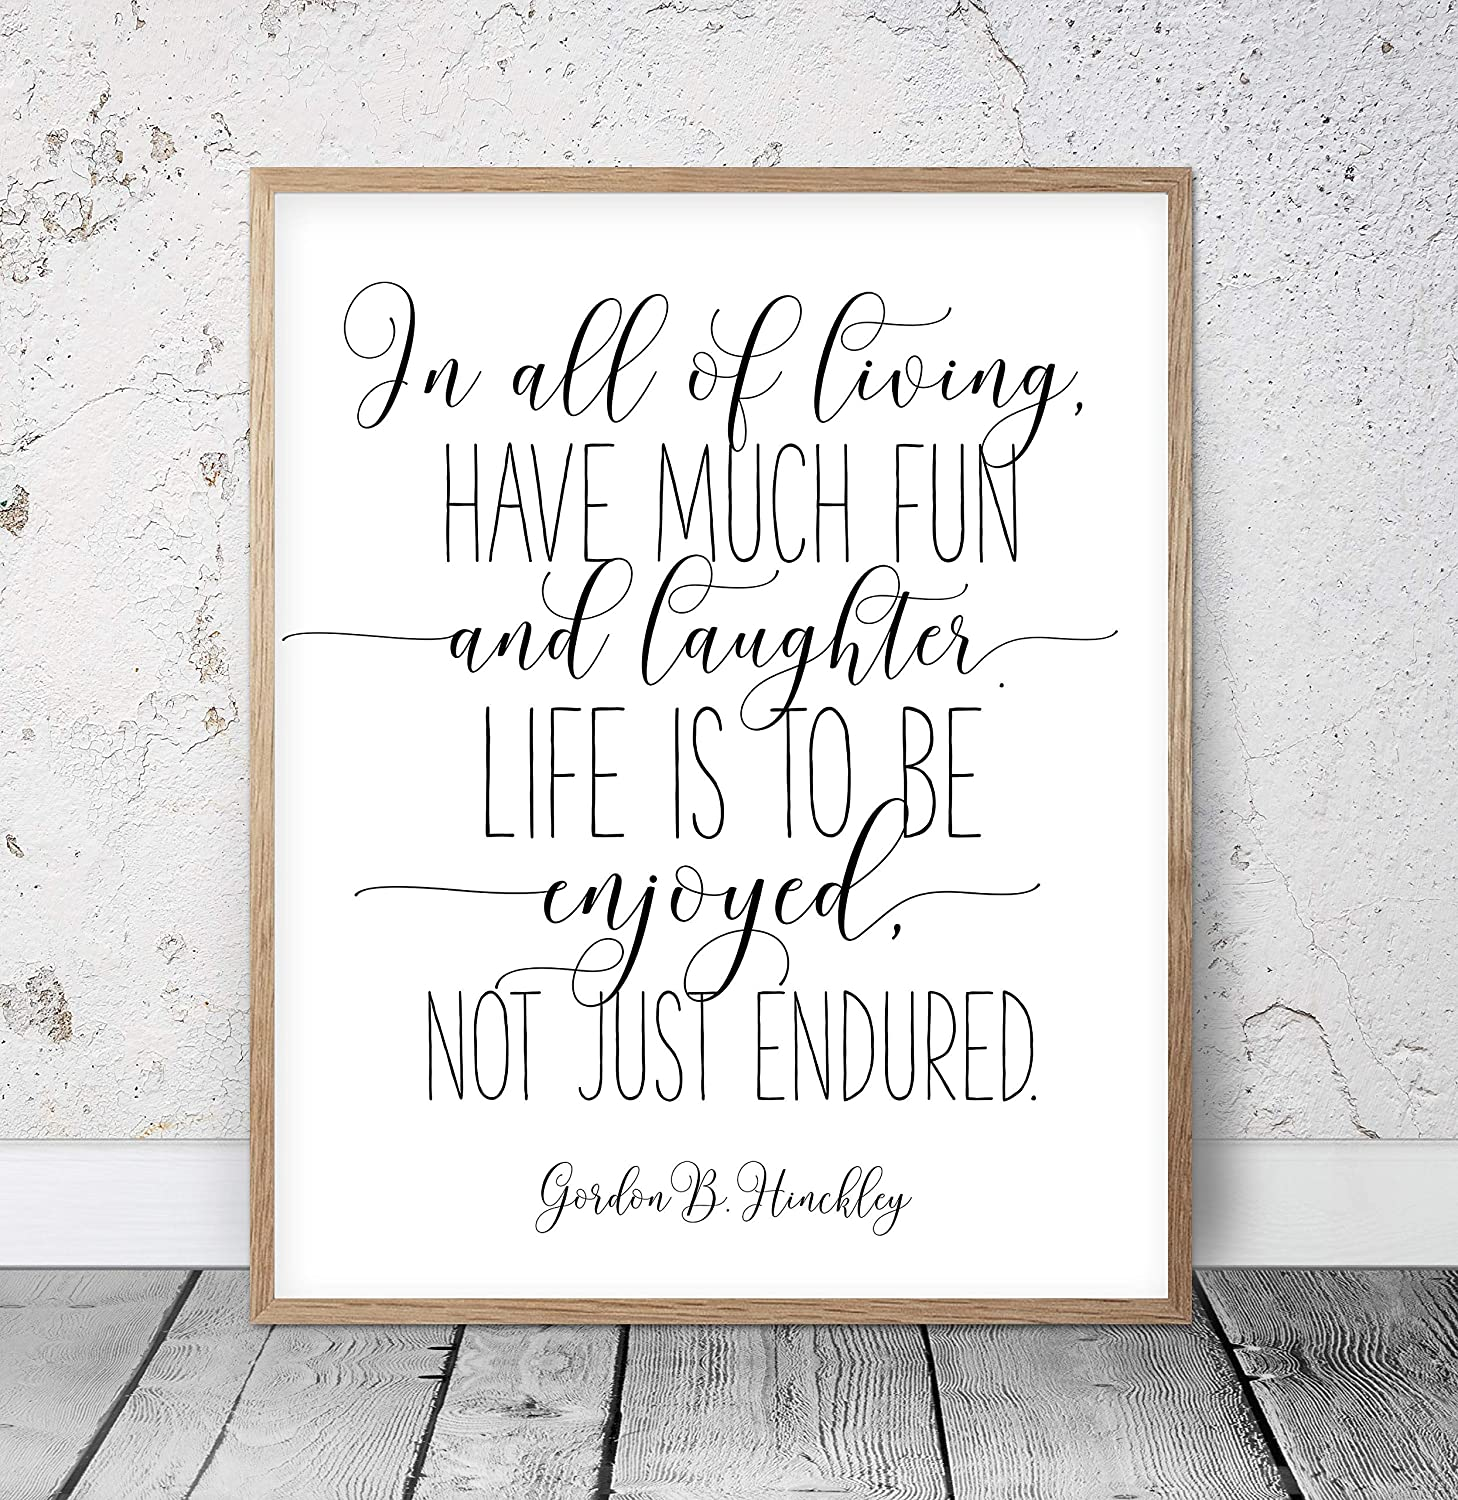 Amazon Com Life Is To Be Enjoyed Not Just Endured Gordon B Hinckley Quotes Life Is A Journey Nursery Printable Wall Art Kids Room Decor Dorm Room Wood Pallet Design Wall Art Sign